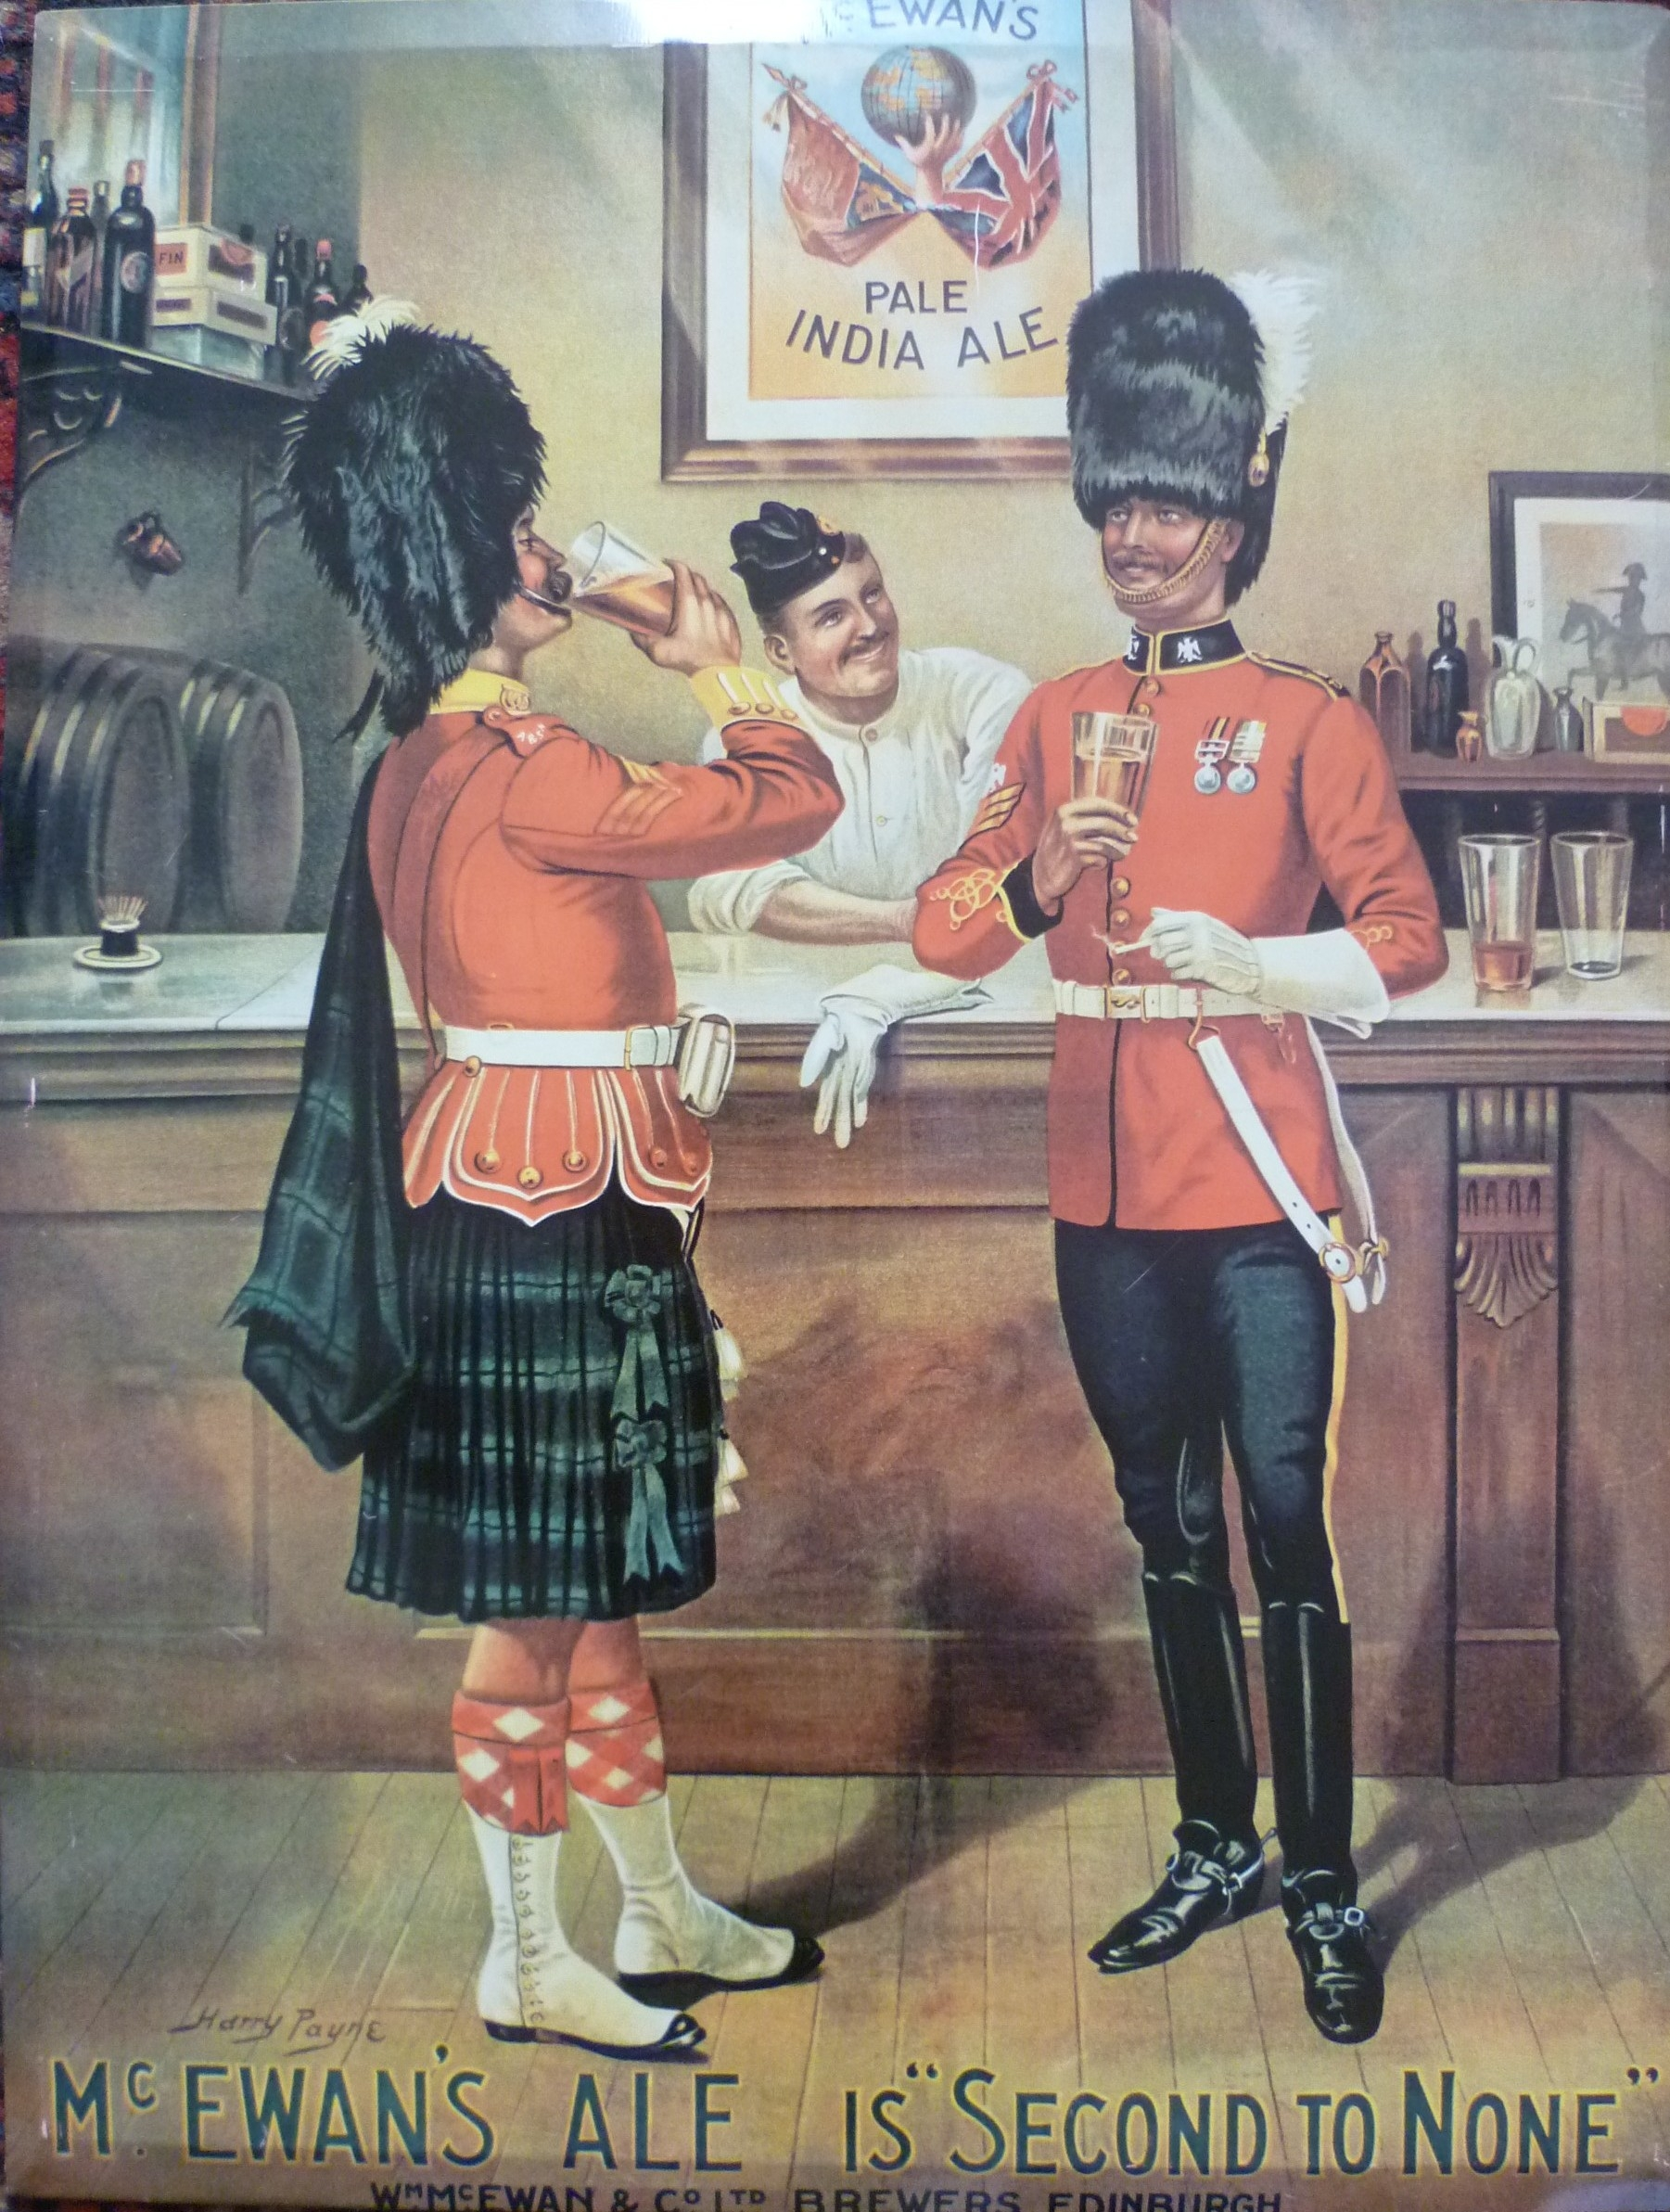 An old Ale advert featuring two British men drinking beer